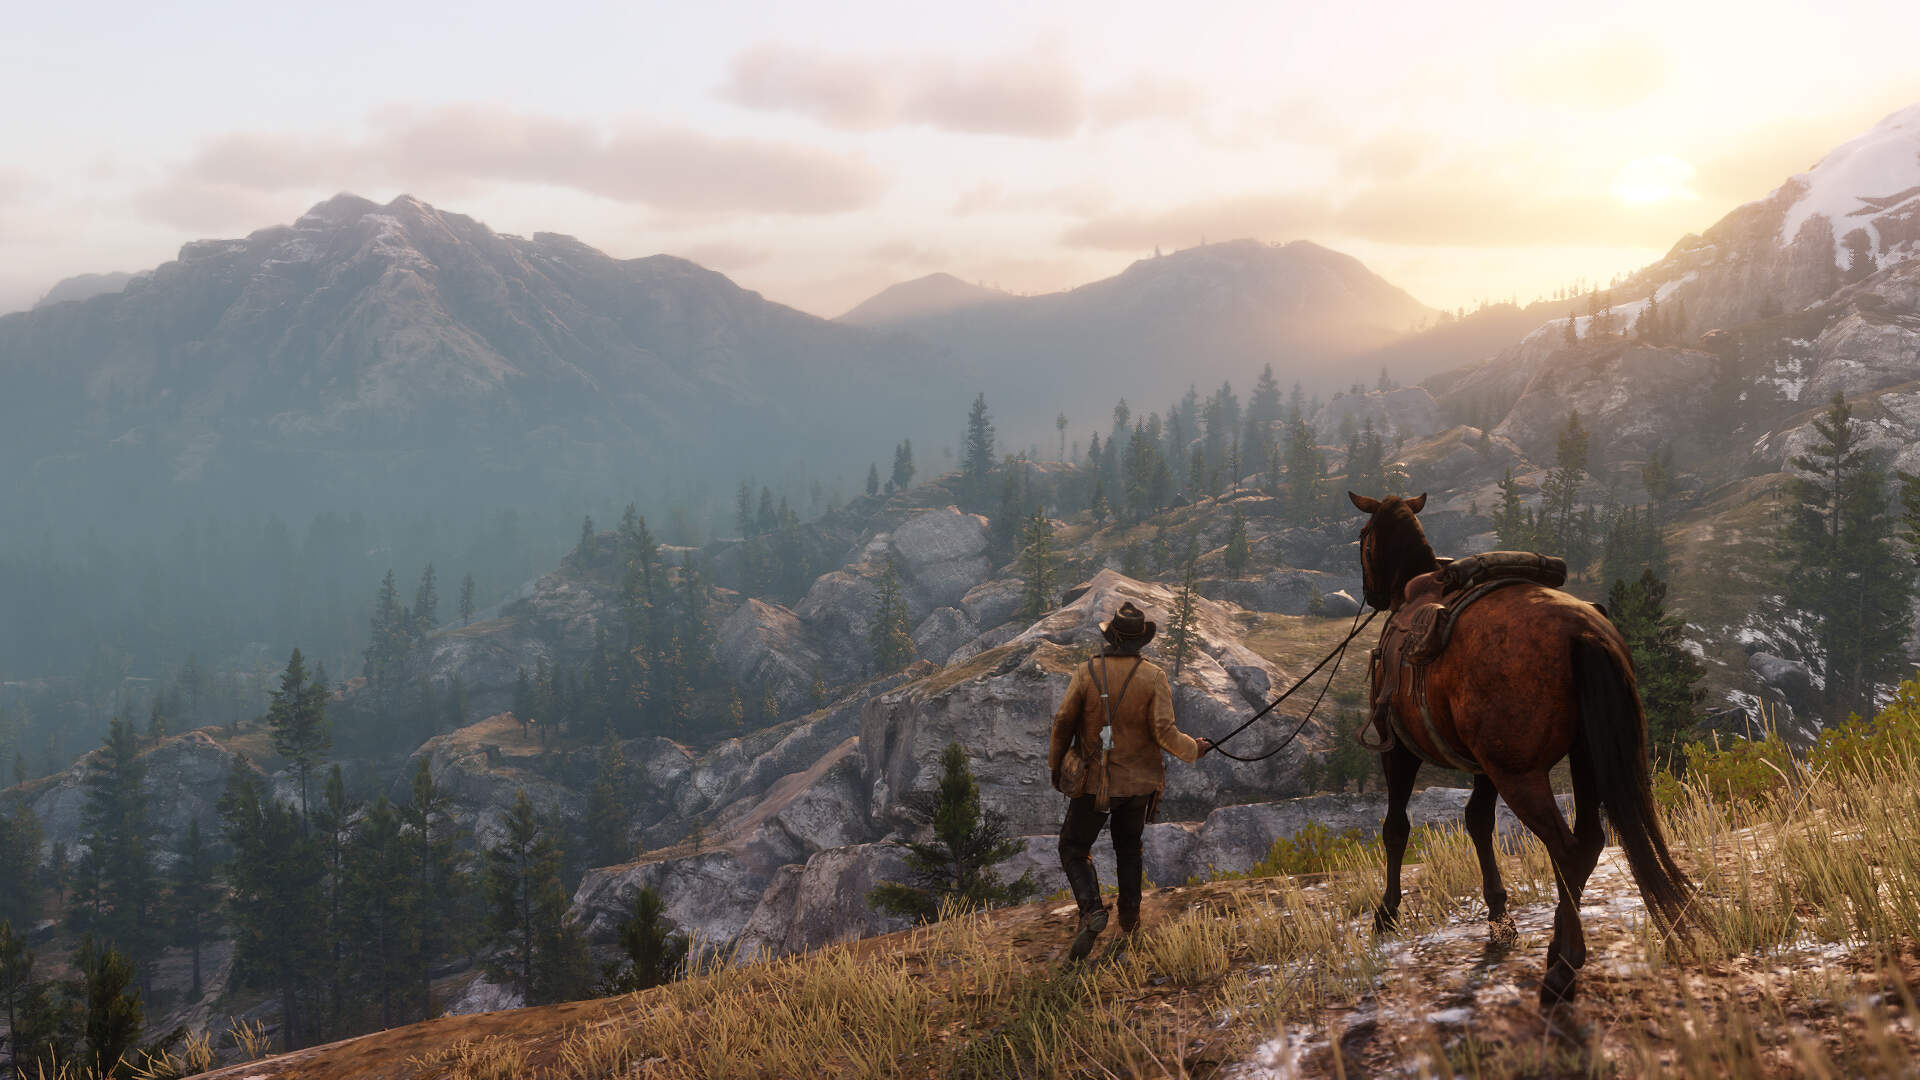 """Red Dead Redemption 2's World Goes """"Far Beyond"""" That of GTA 5, Rockstar Says"""